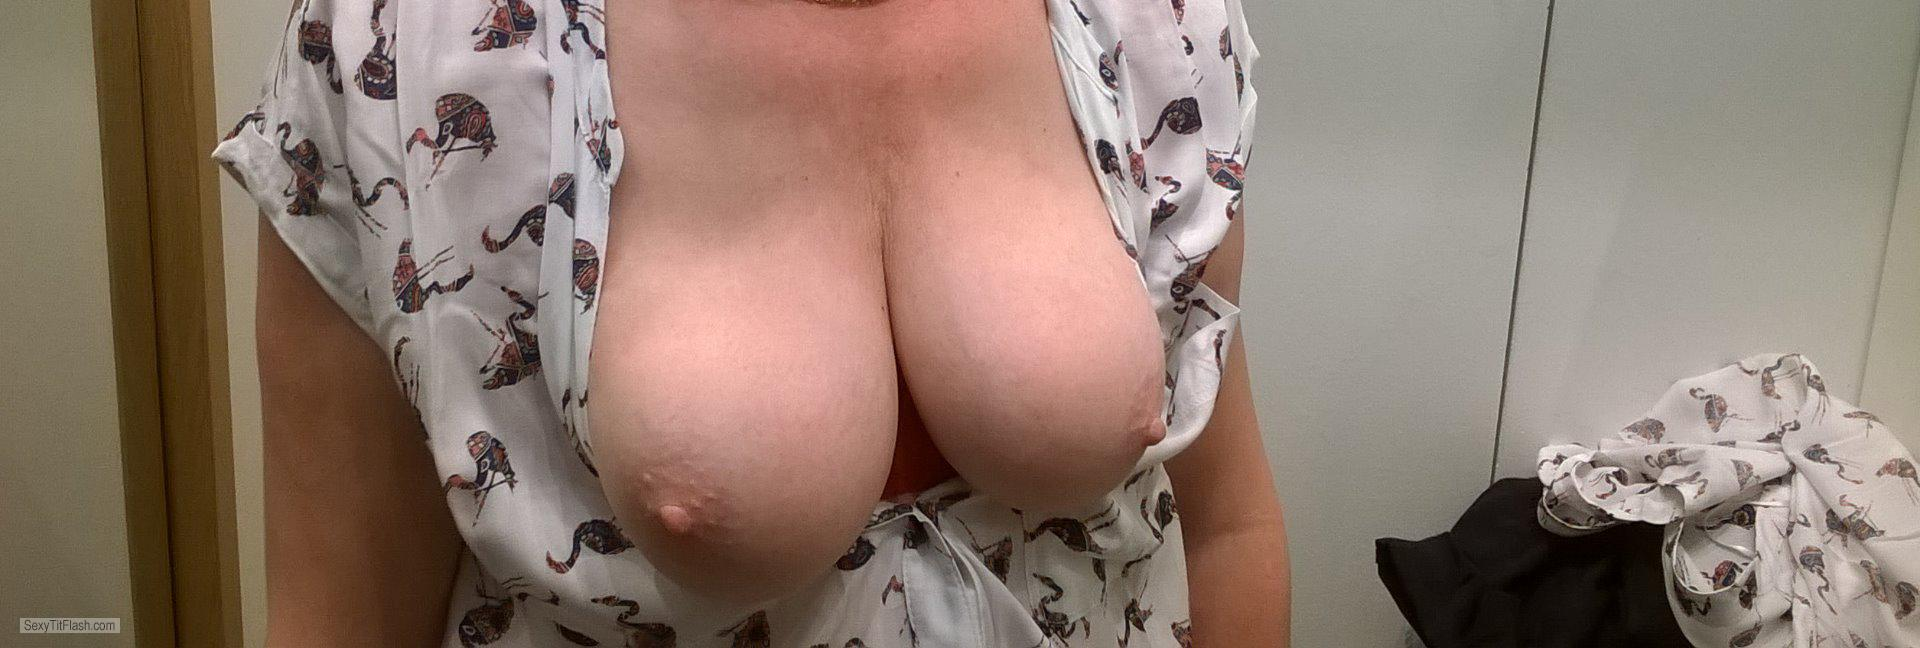 Tit Flash: My Medium Tits (Selfie) - Lyd from Belgium